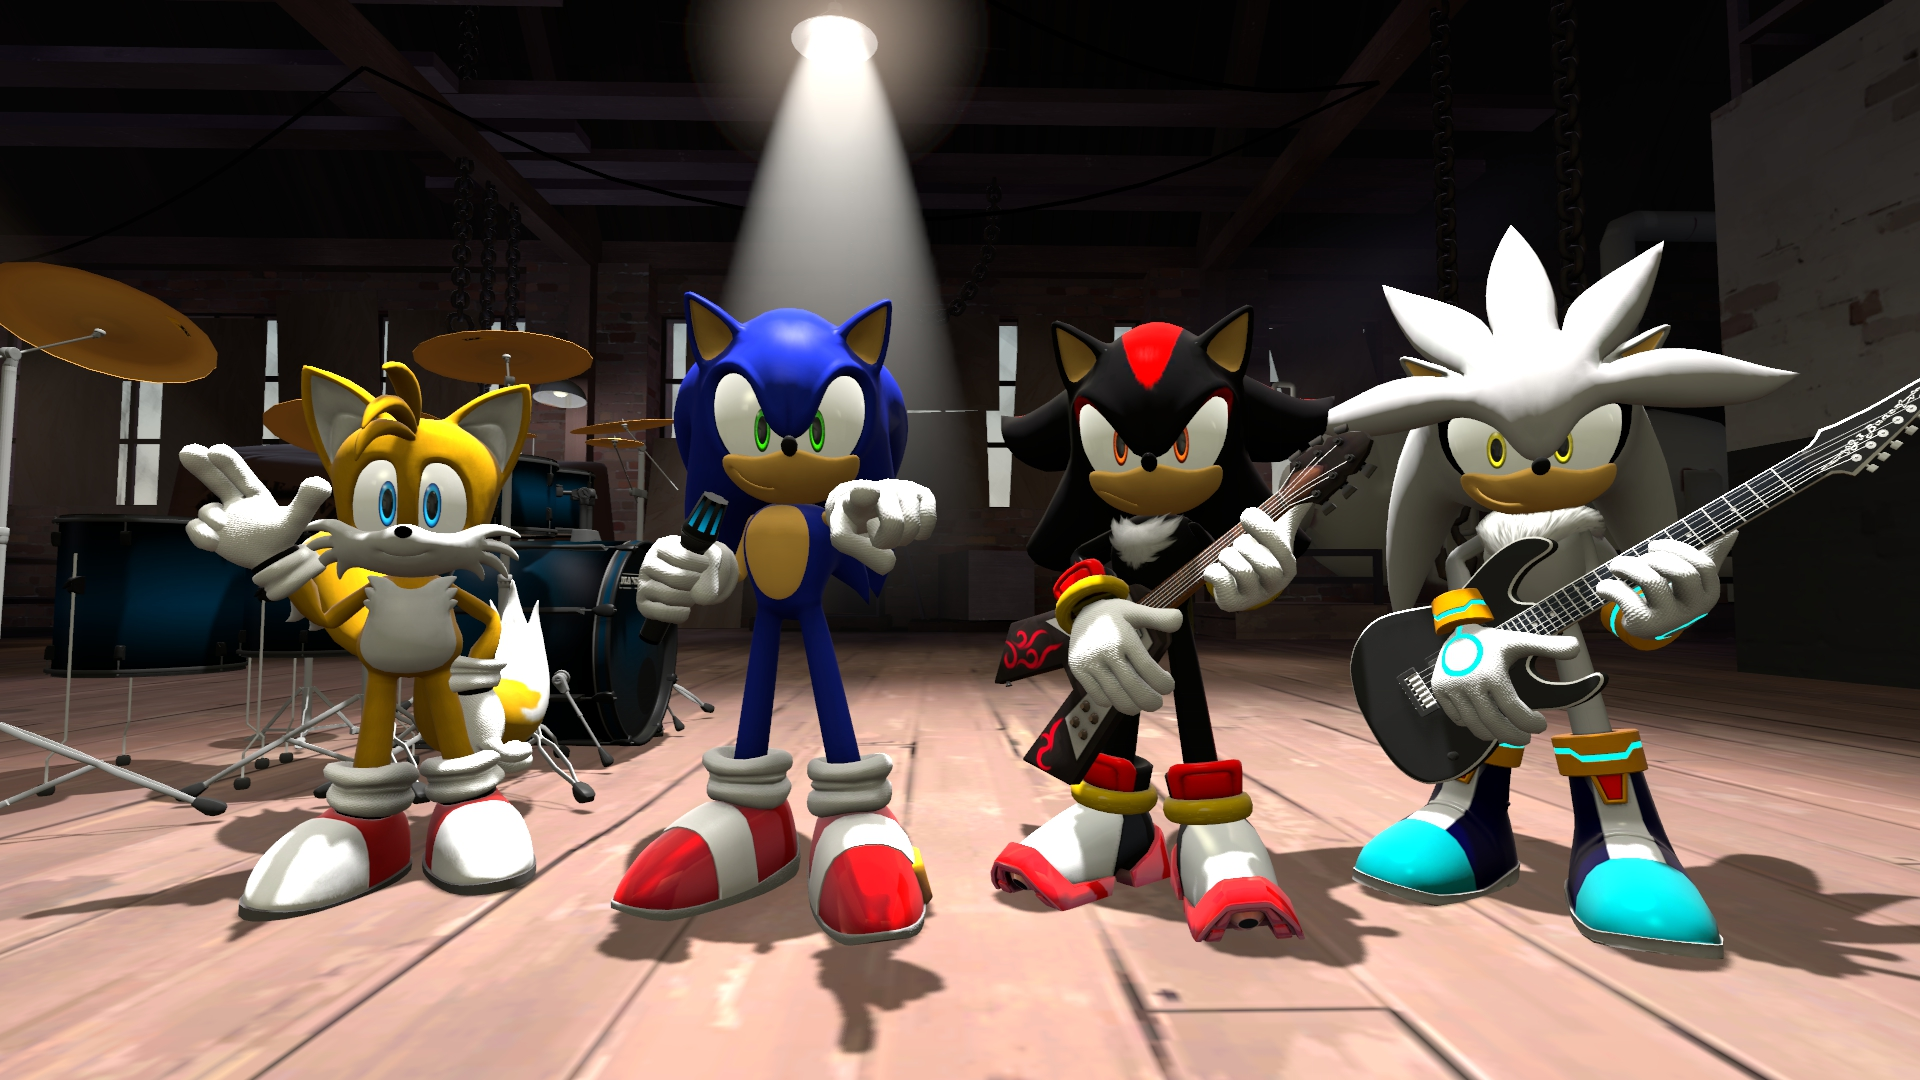 Image removal request use the form below to delete this sonic - Image Removal Request Use The Form Below To Delete This Sonic Sfm Photo Collection